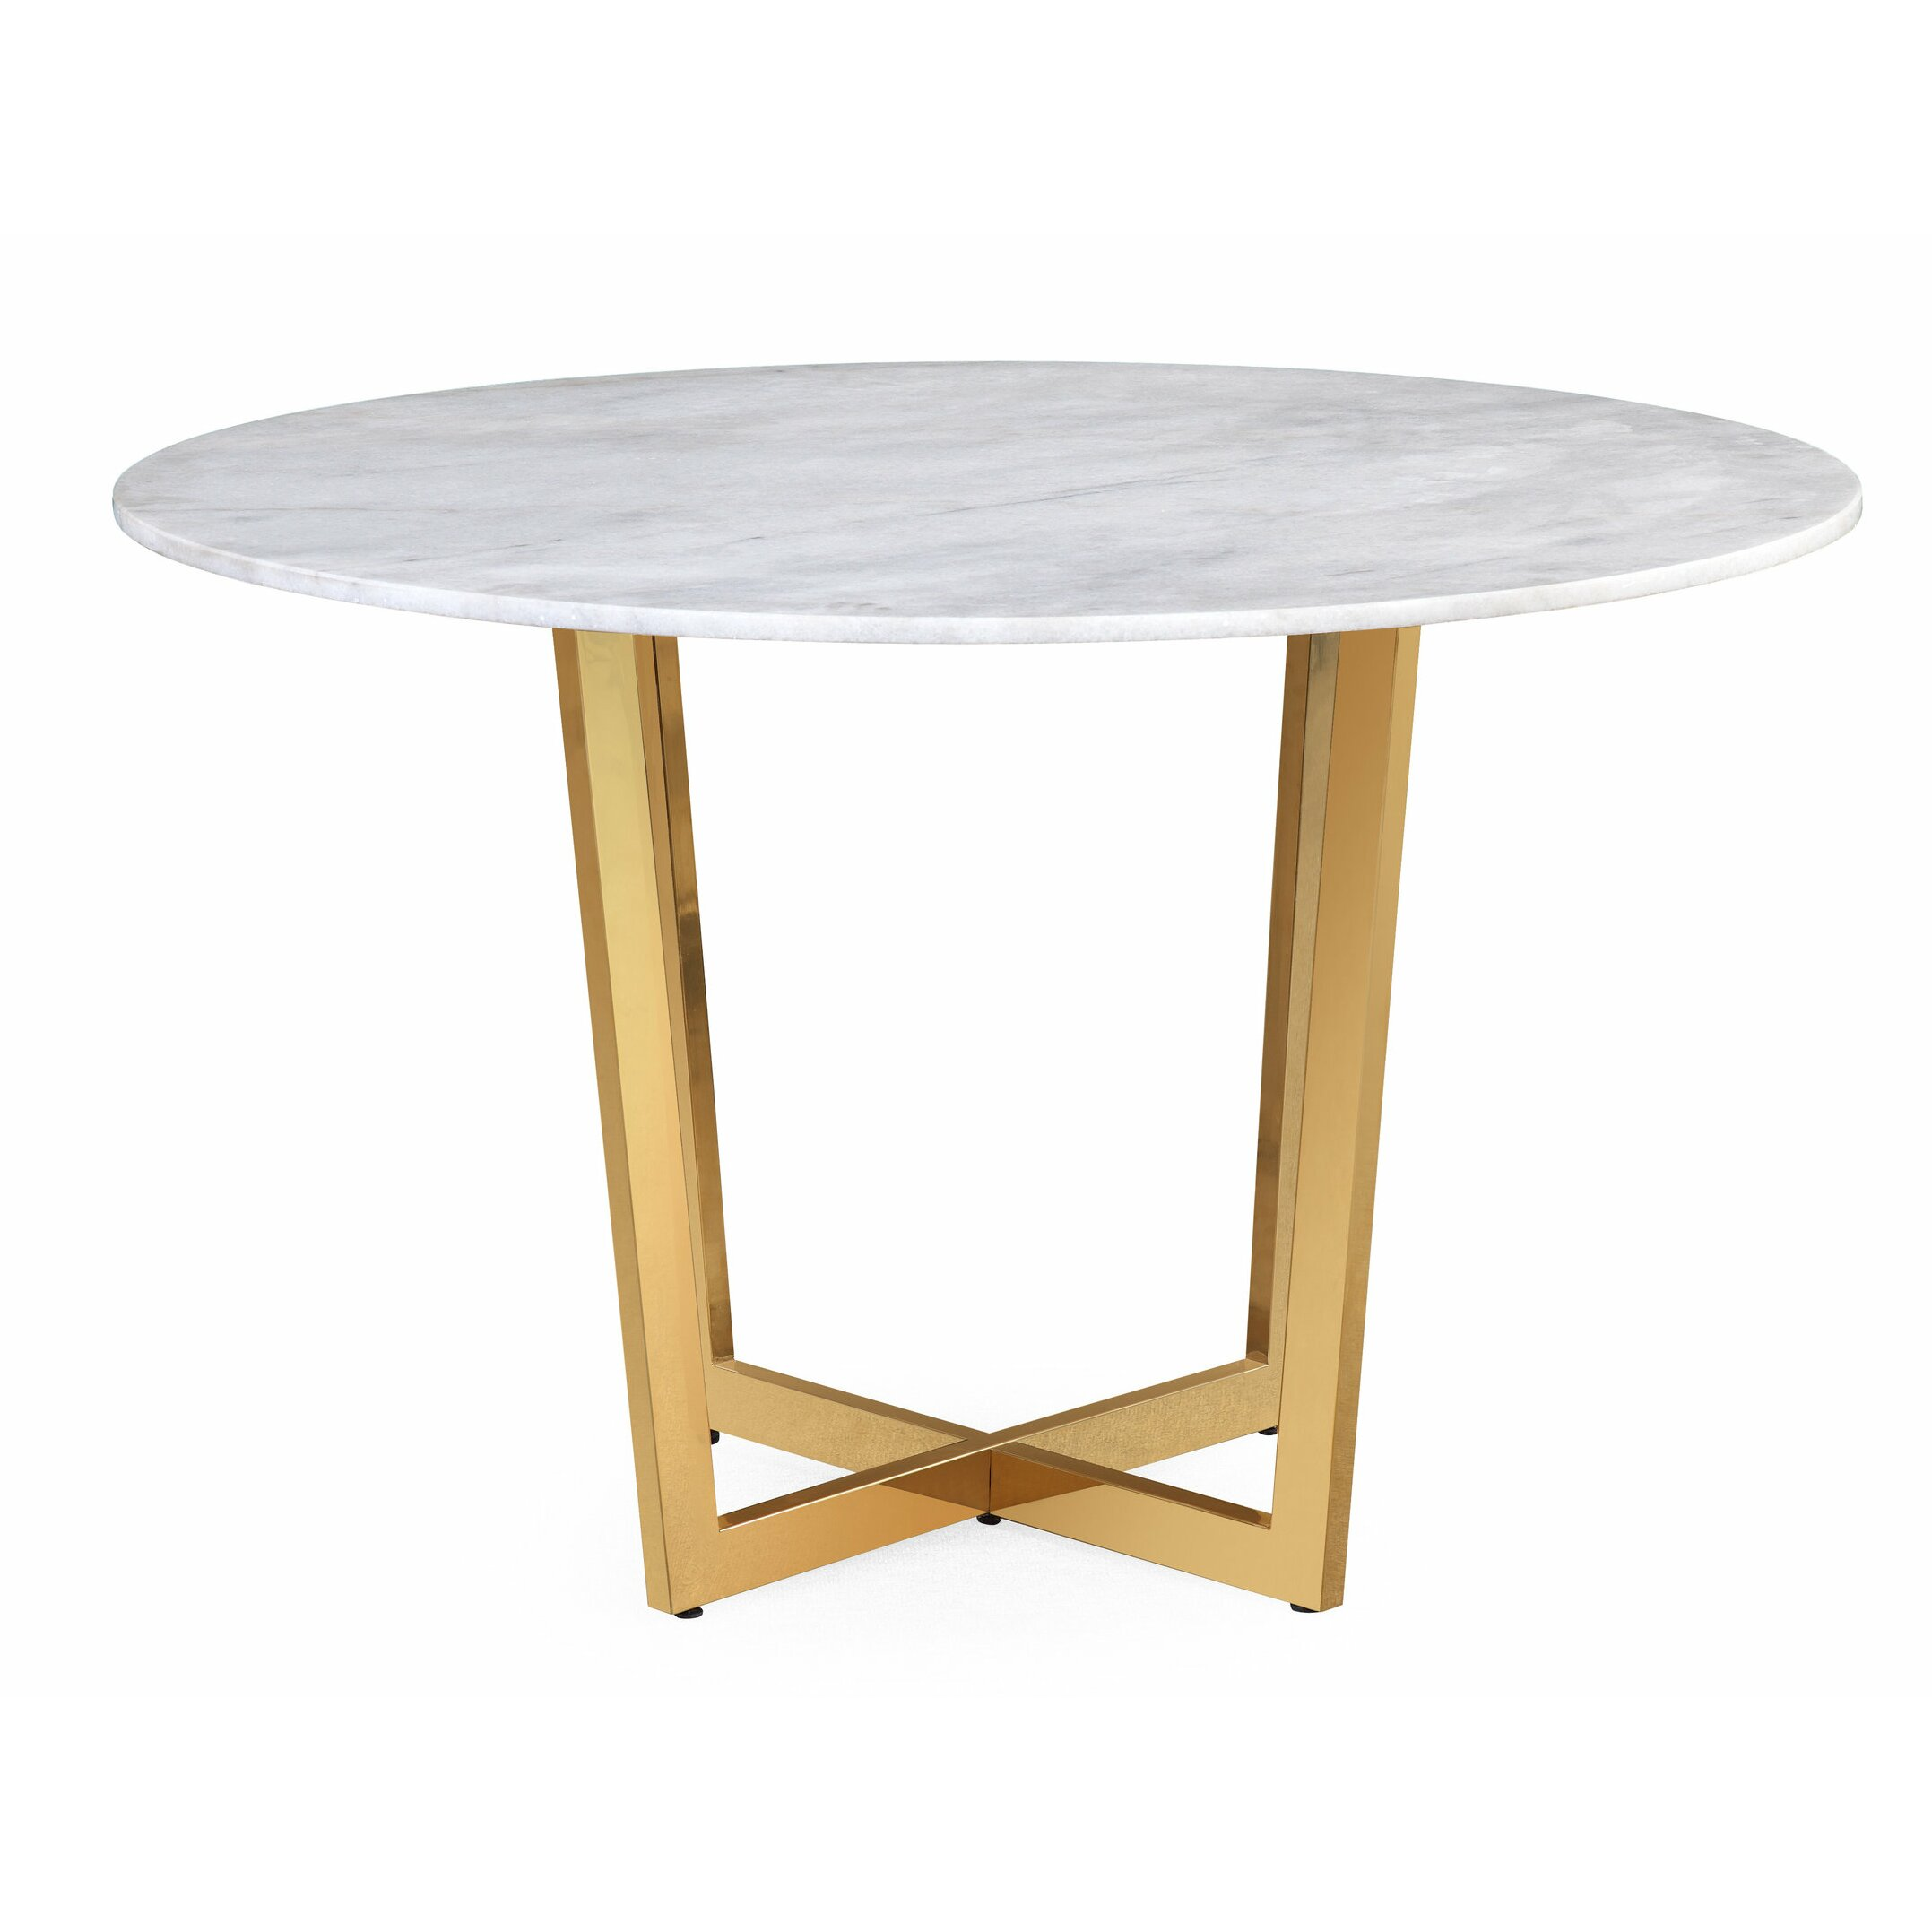 Mercer41 Rochefort Dining Table & Reviews | Wayfair